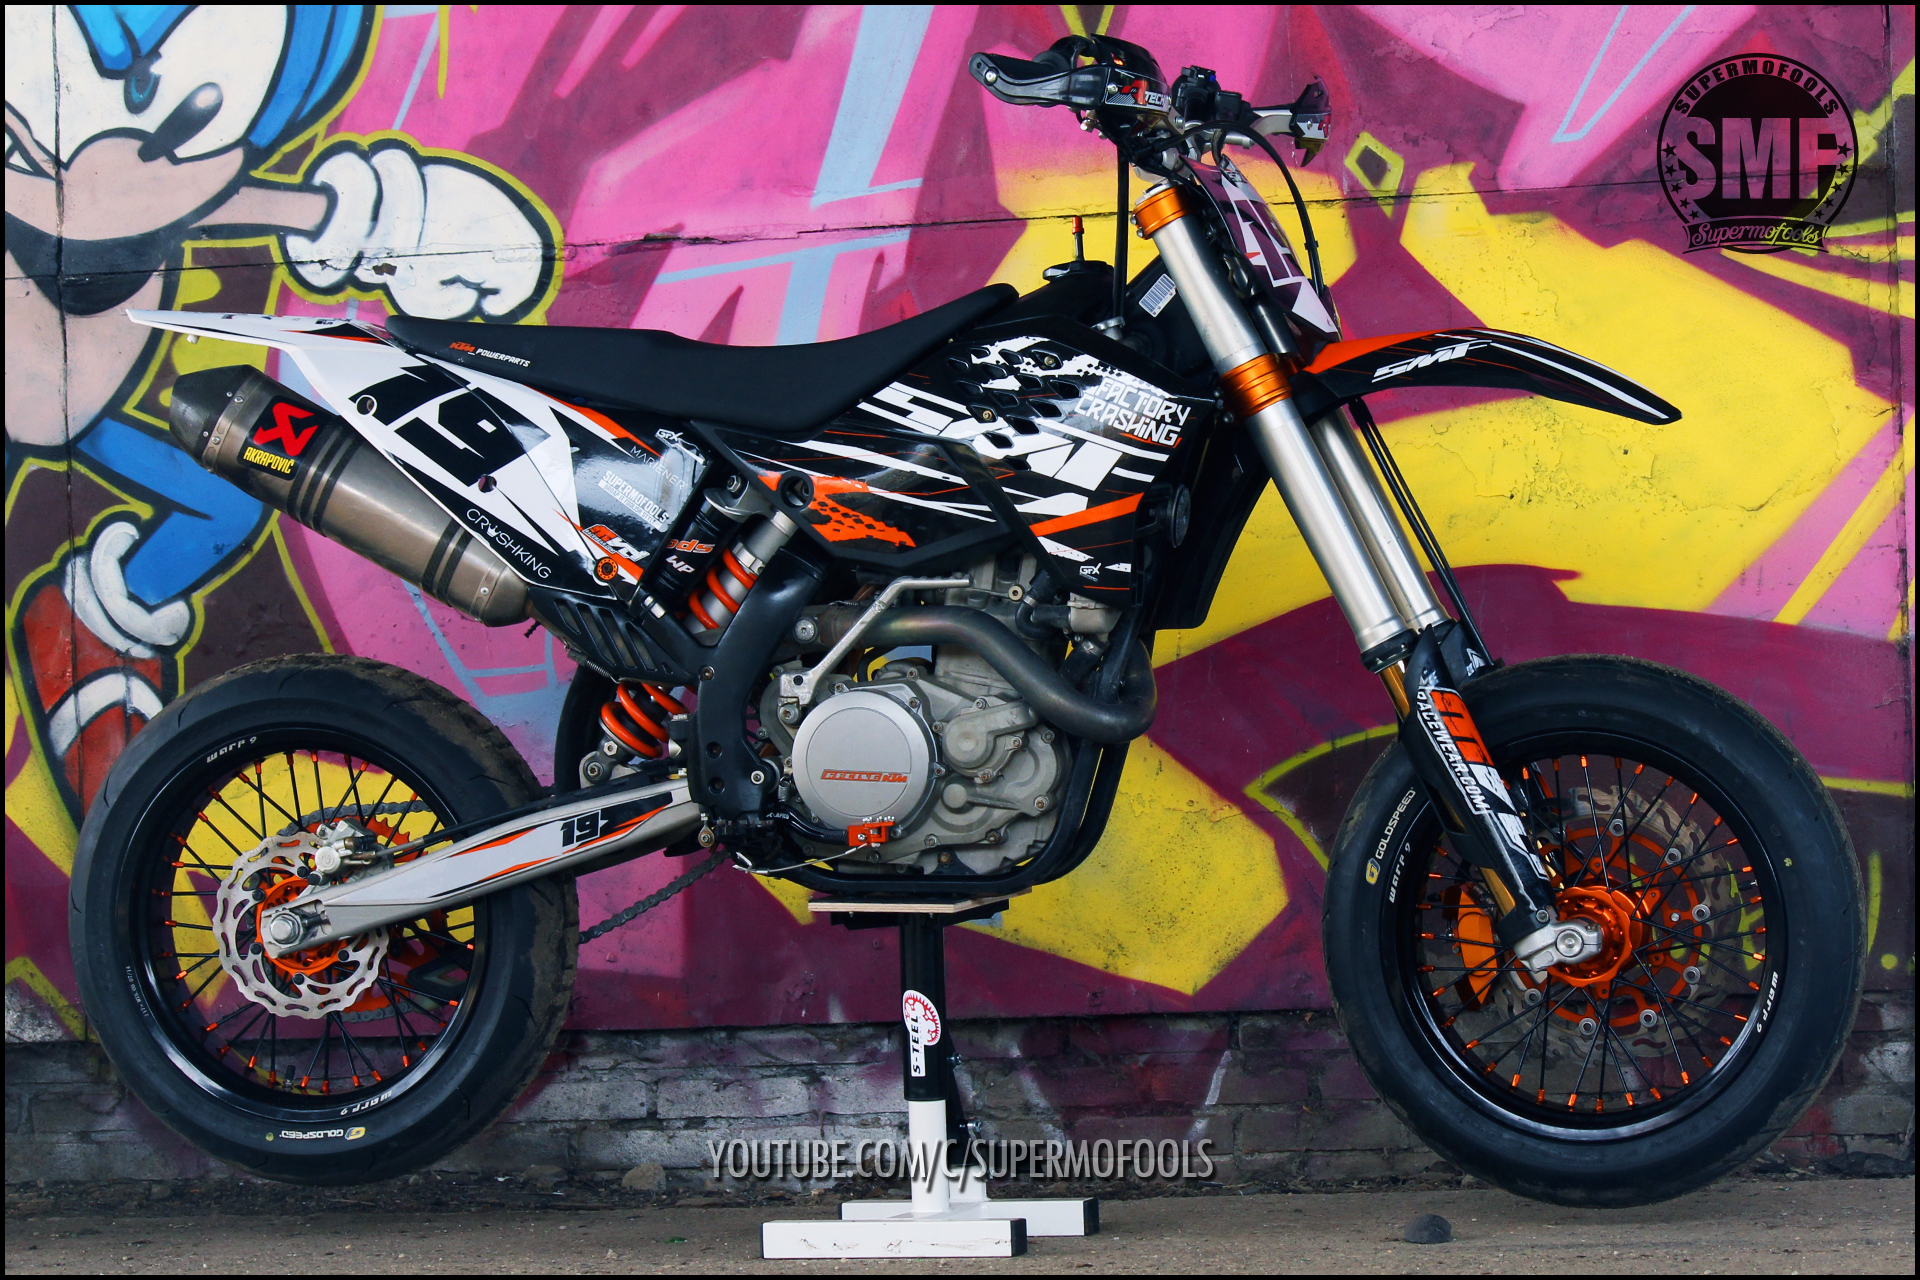 ktm exc530 s custom built supermoto s supermofools derestricted. Black Bedroom Furniture Sets. Home Design Ideas